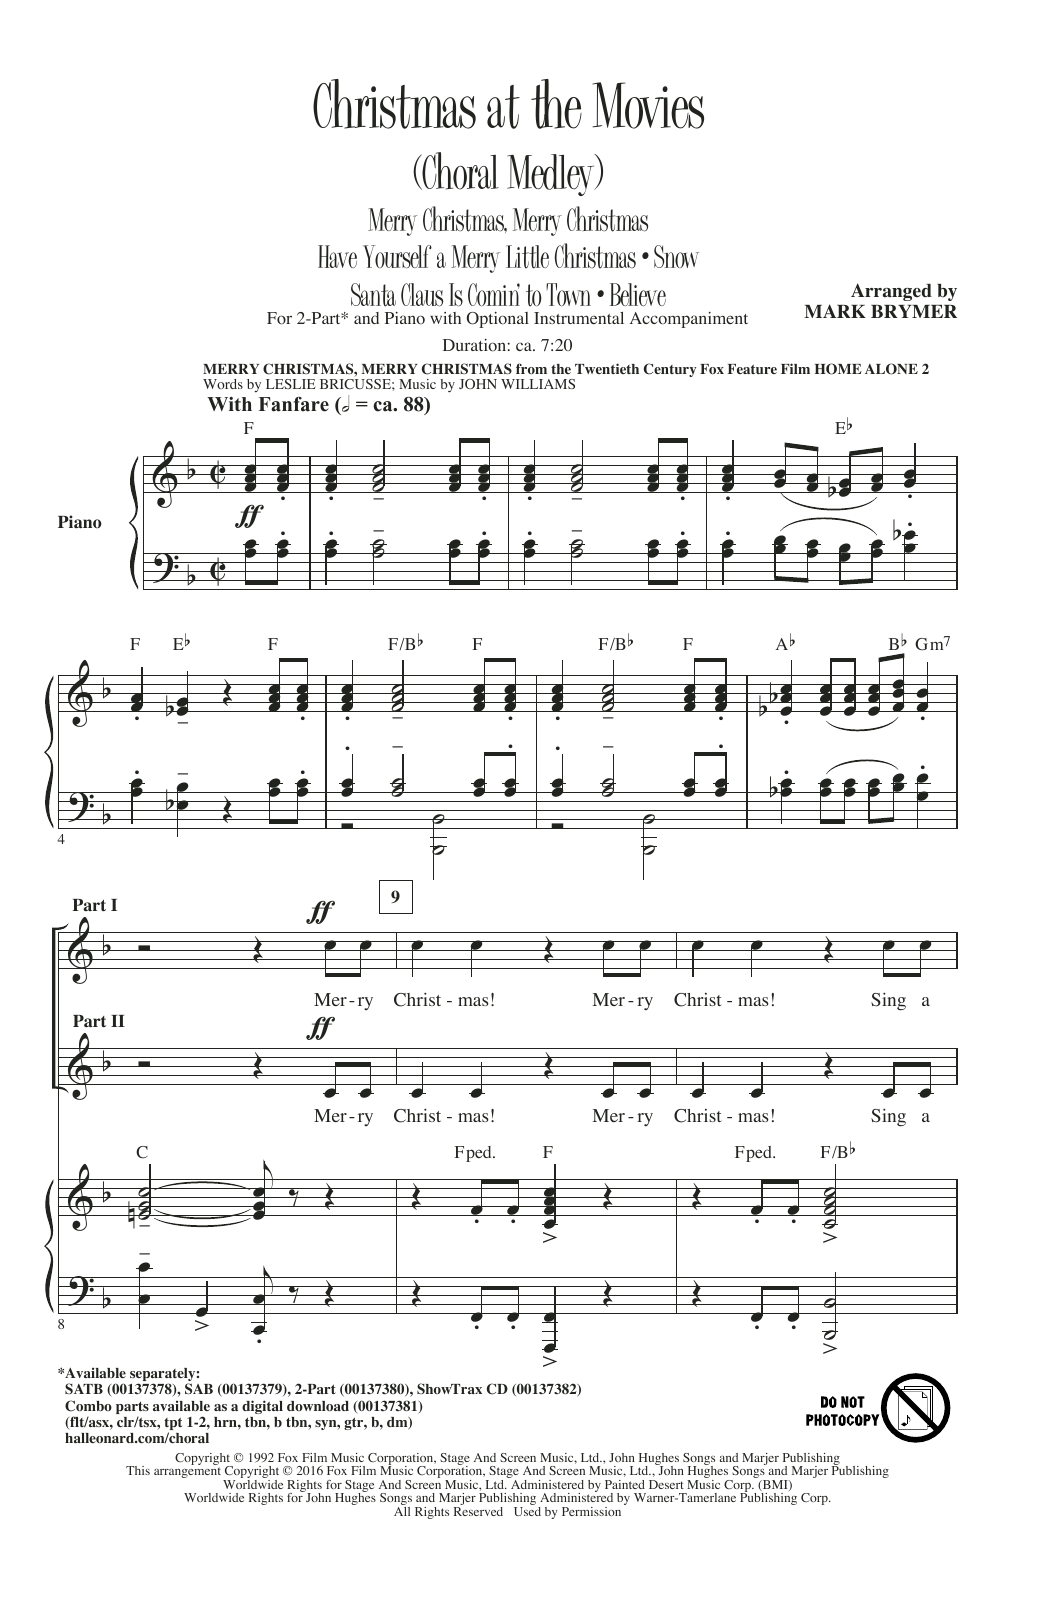 Christmas At The Movies (Choral Medley) atStanton's Sheet Music